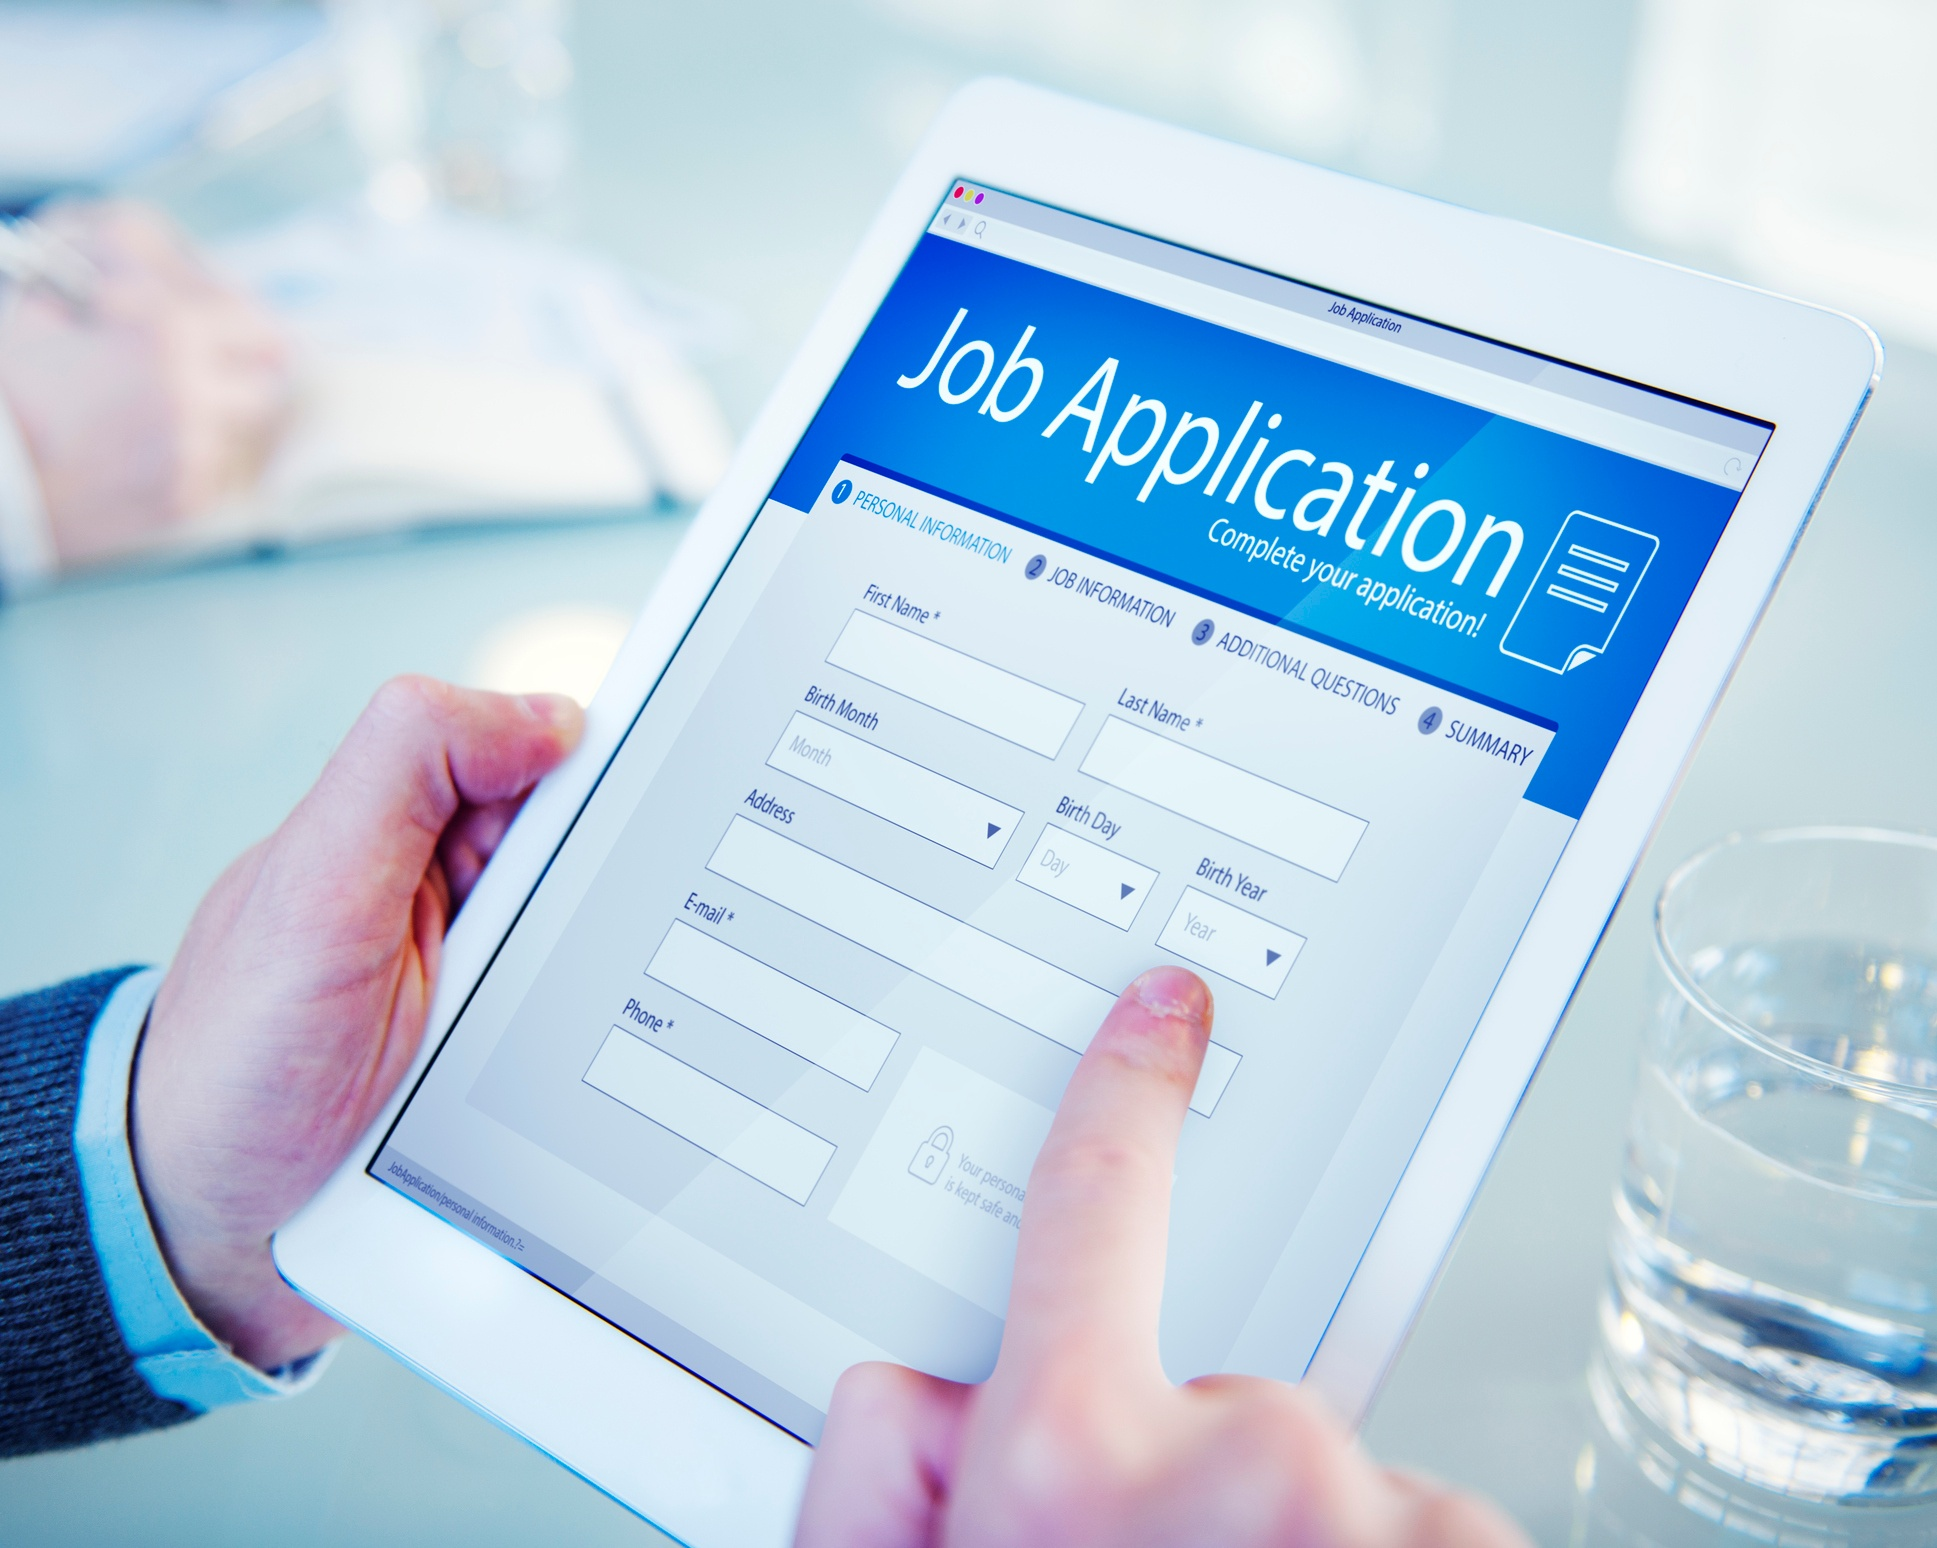 5 Online Job Application Mistakes You'll Want to Avoid